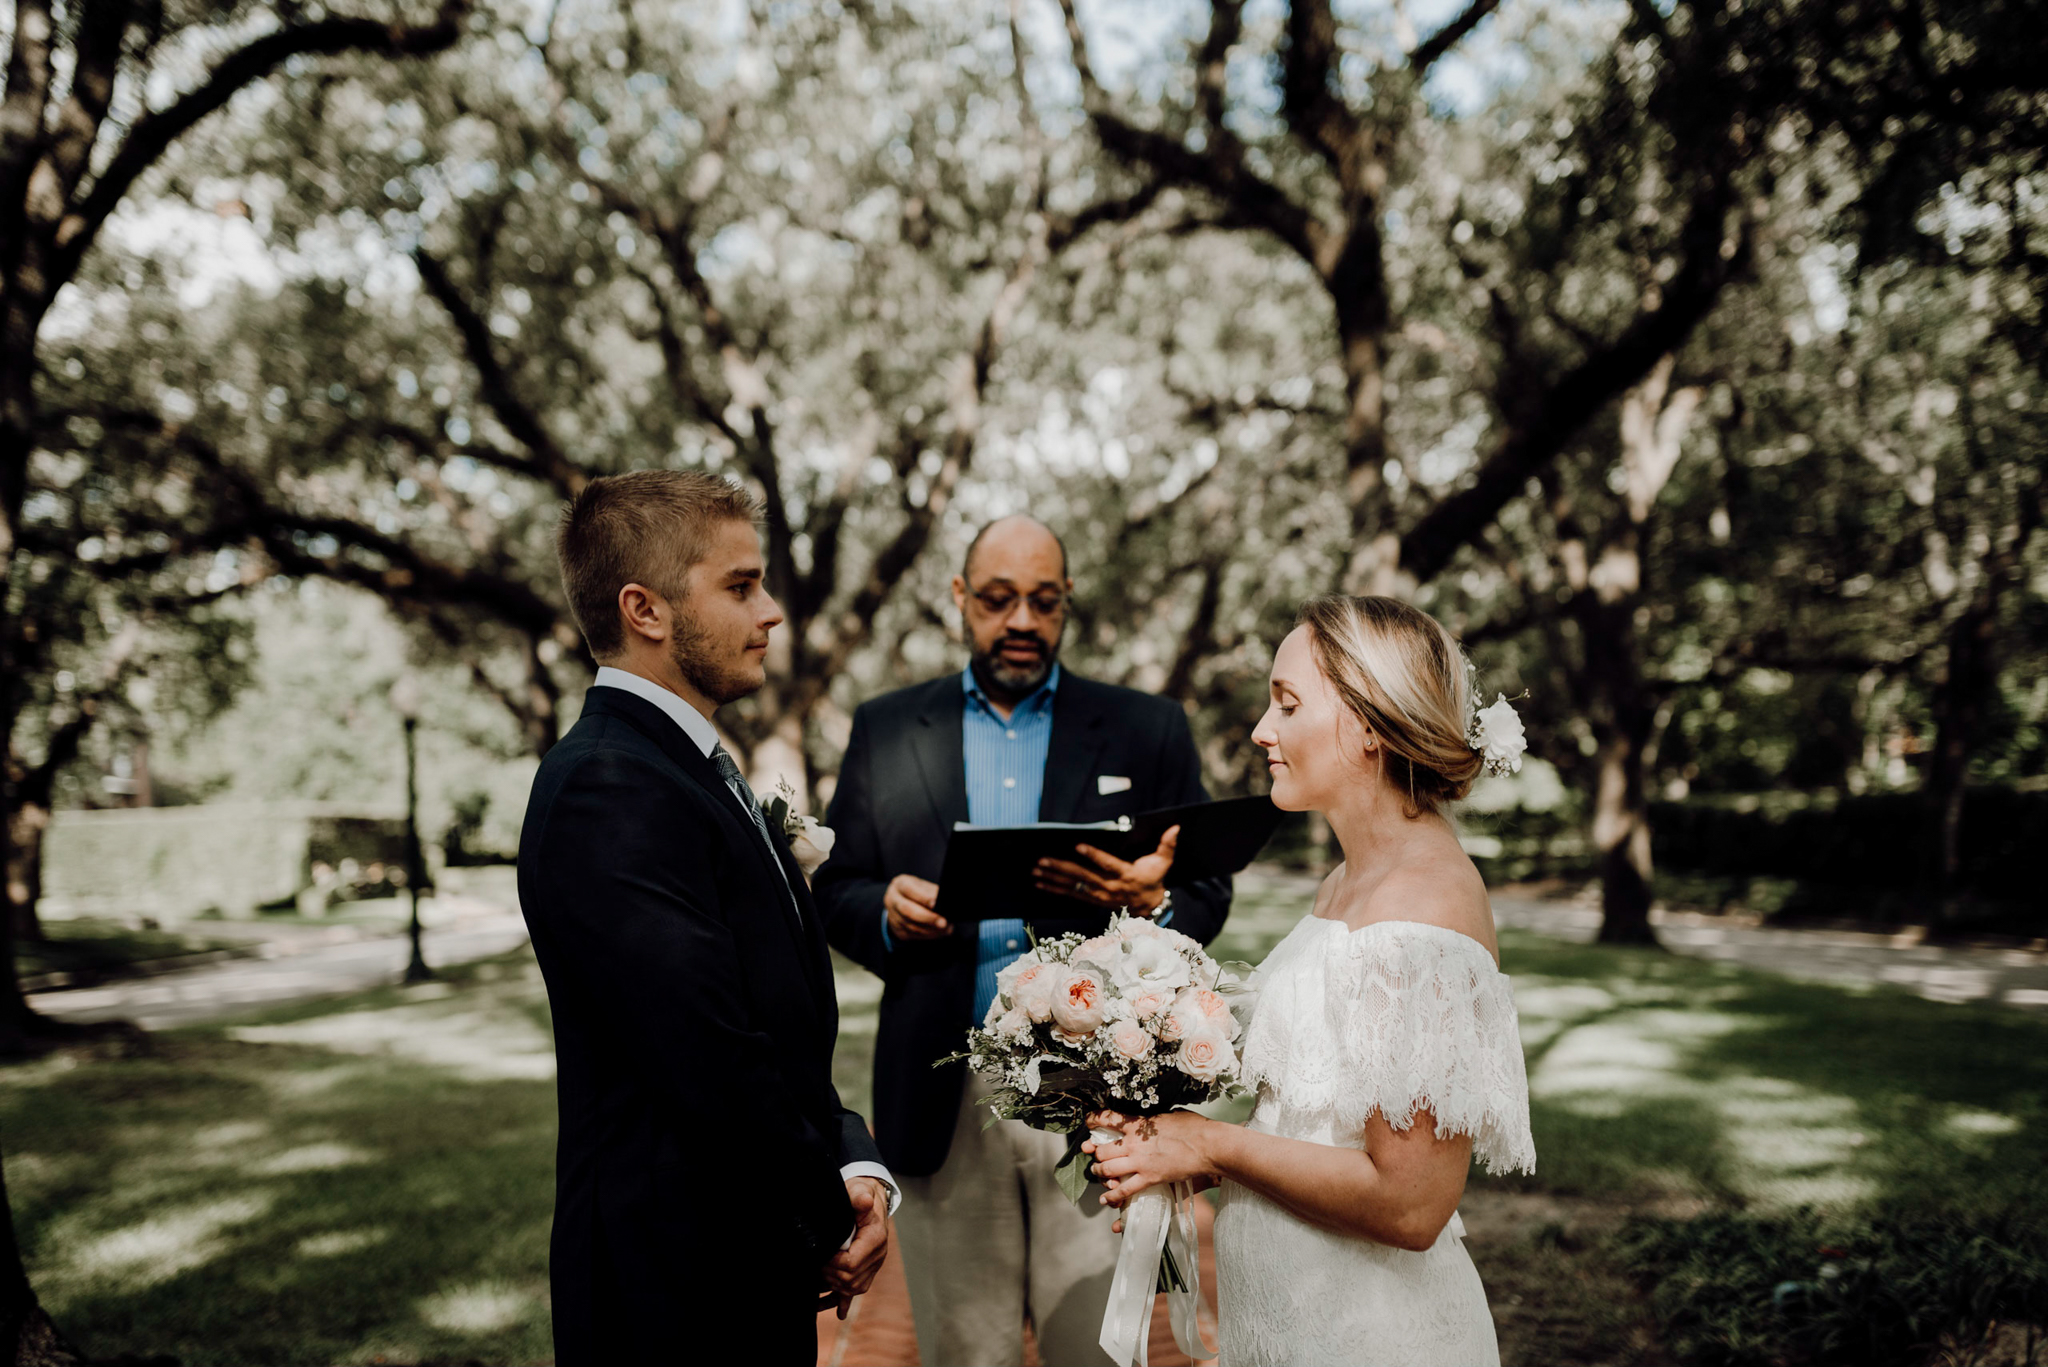 Houston Wedding Photographer-North Blvd Intimate Elopement- Houston Wedding Photographer -Kristen Giles Photography-12.jpg